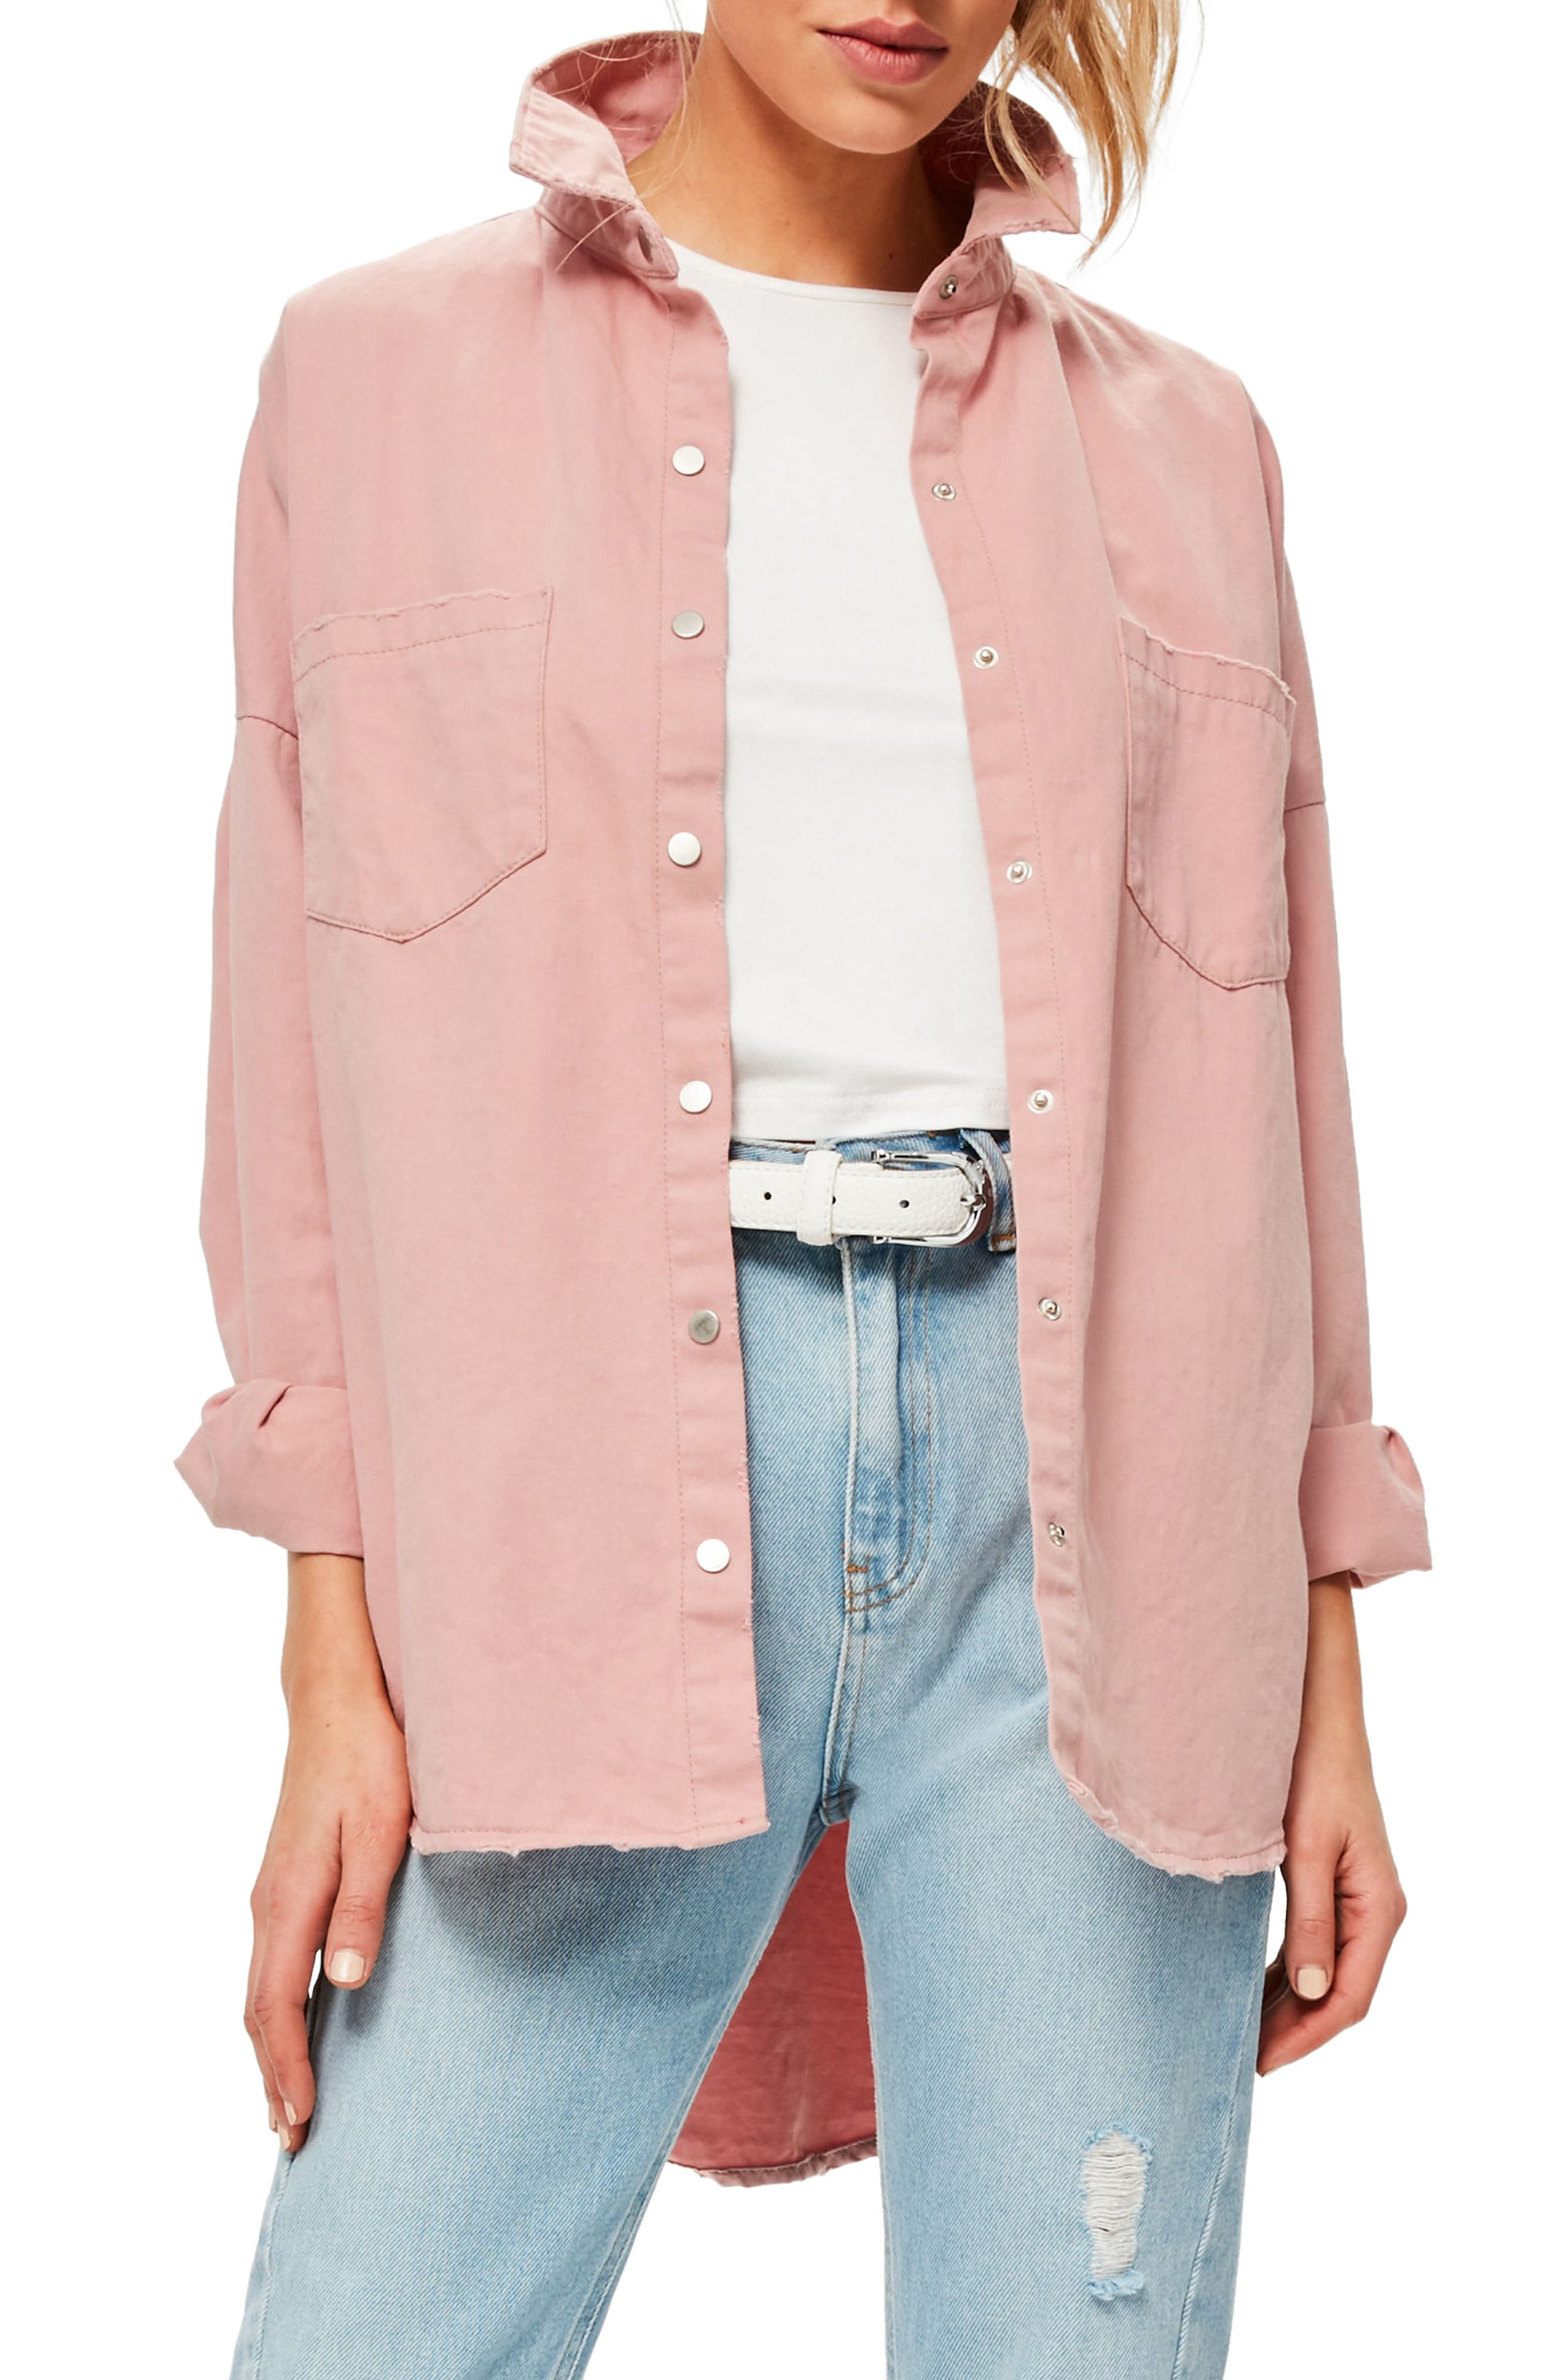 Missguided Back Graphic Oversize Denim Shirt